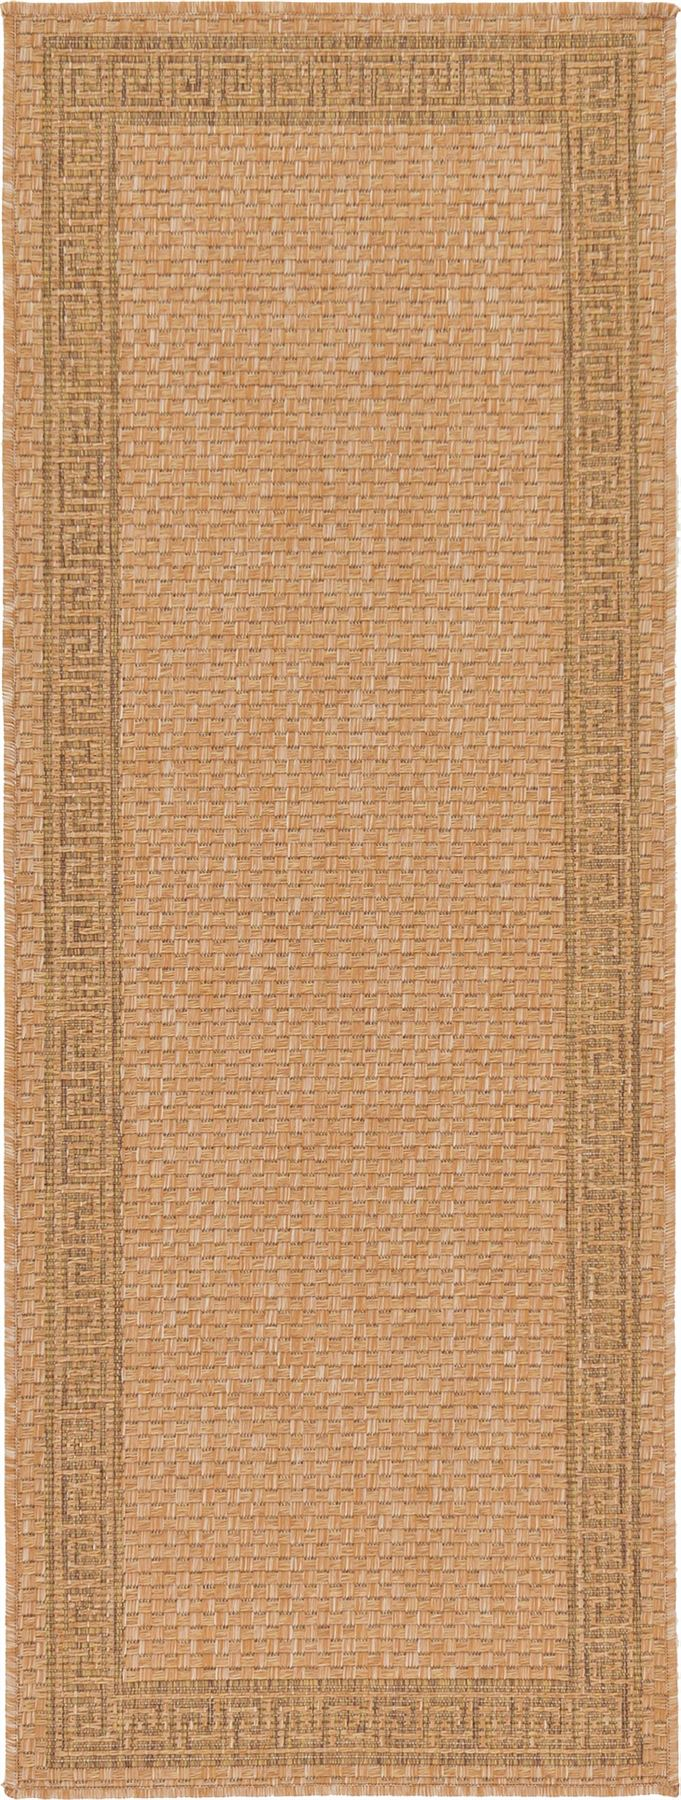 Modern-Outdoor-Thin-Area-Rug-Contemporary-Plain-Large-Small-Carpet-Gray-Brown thumbnail 20